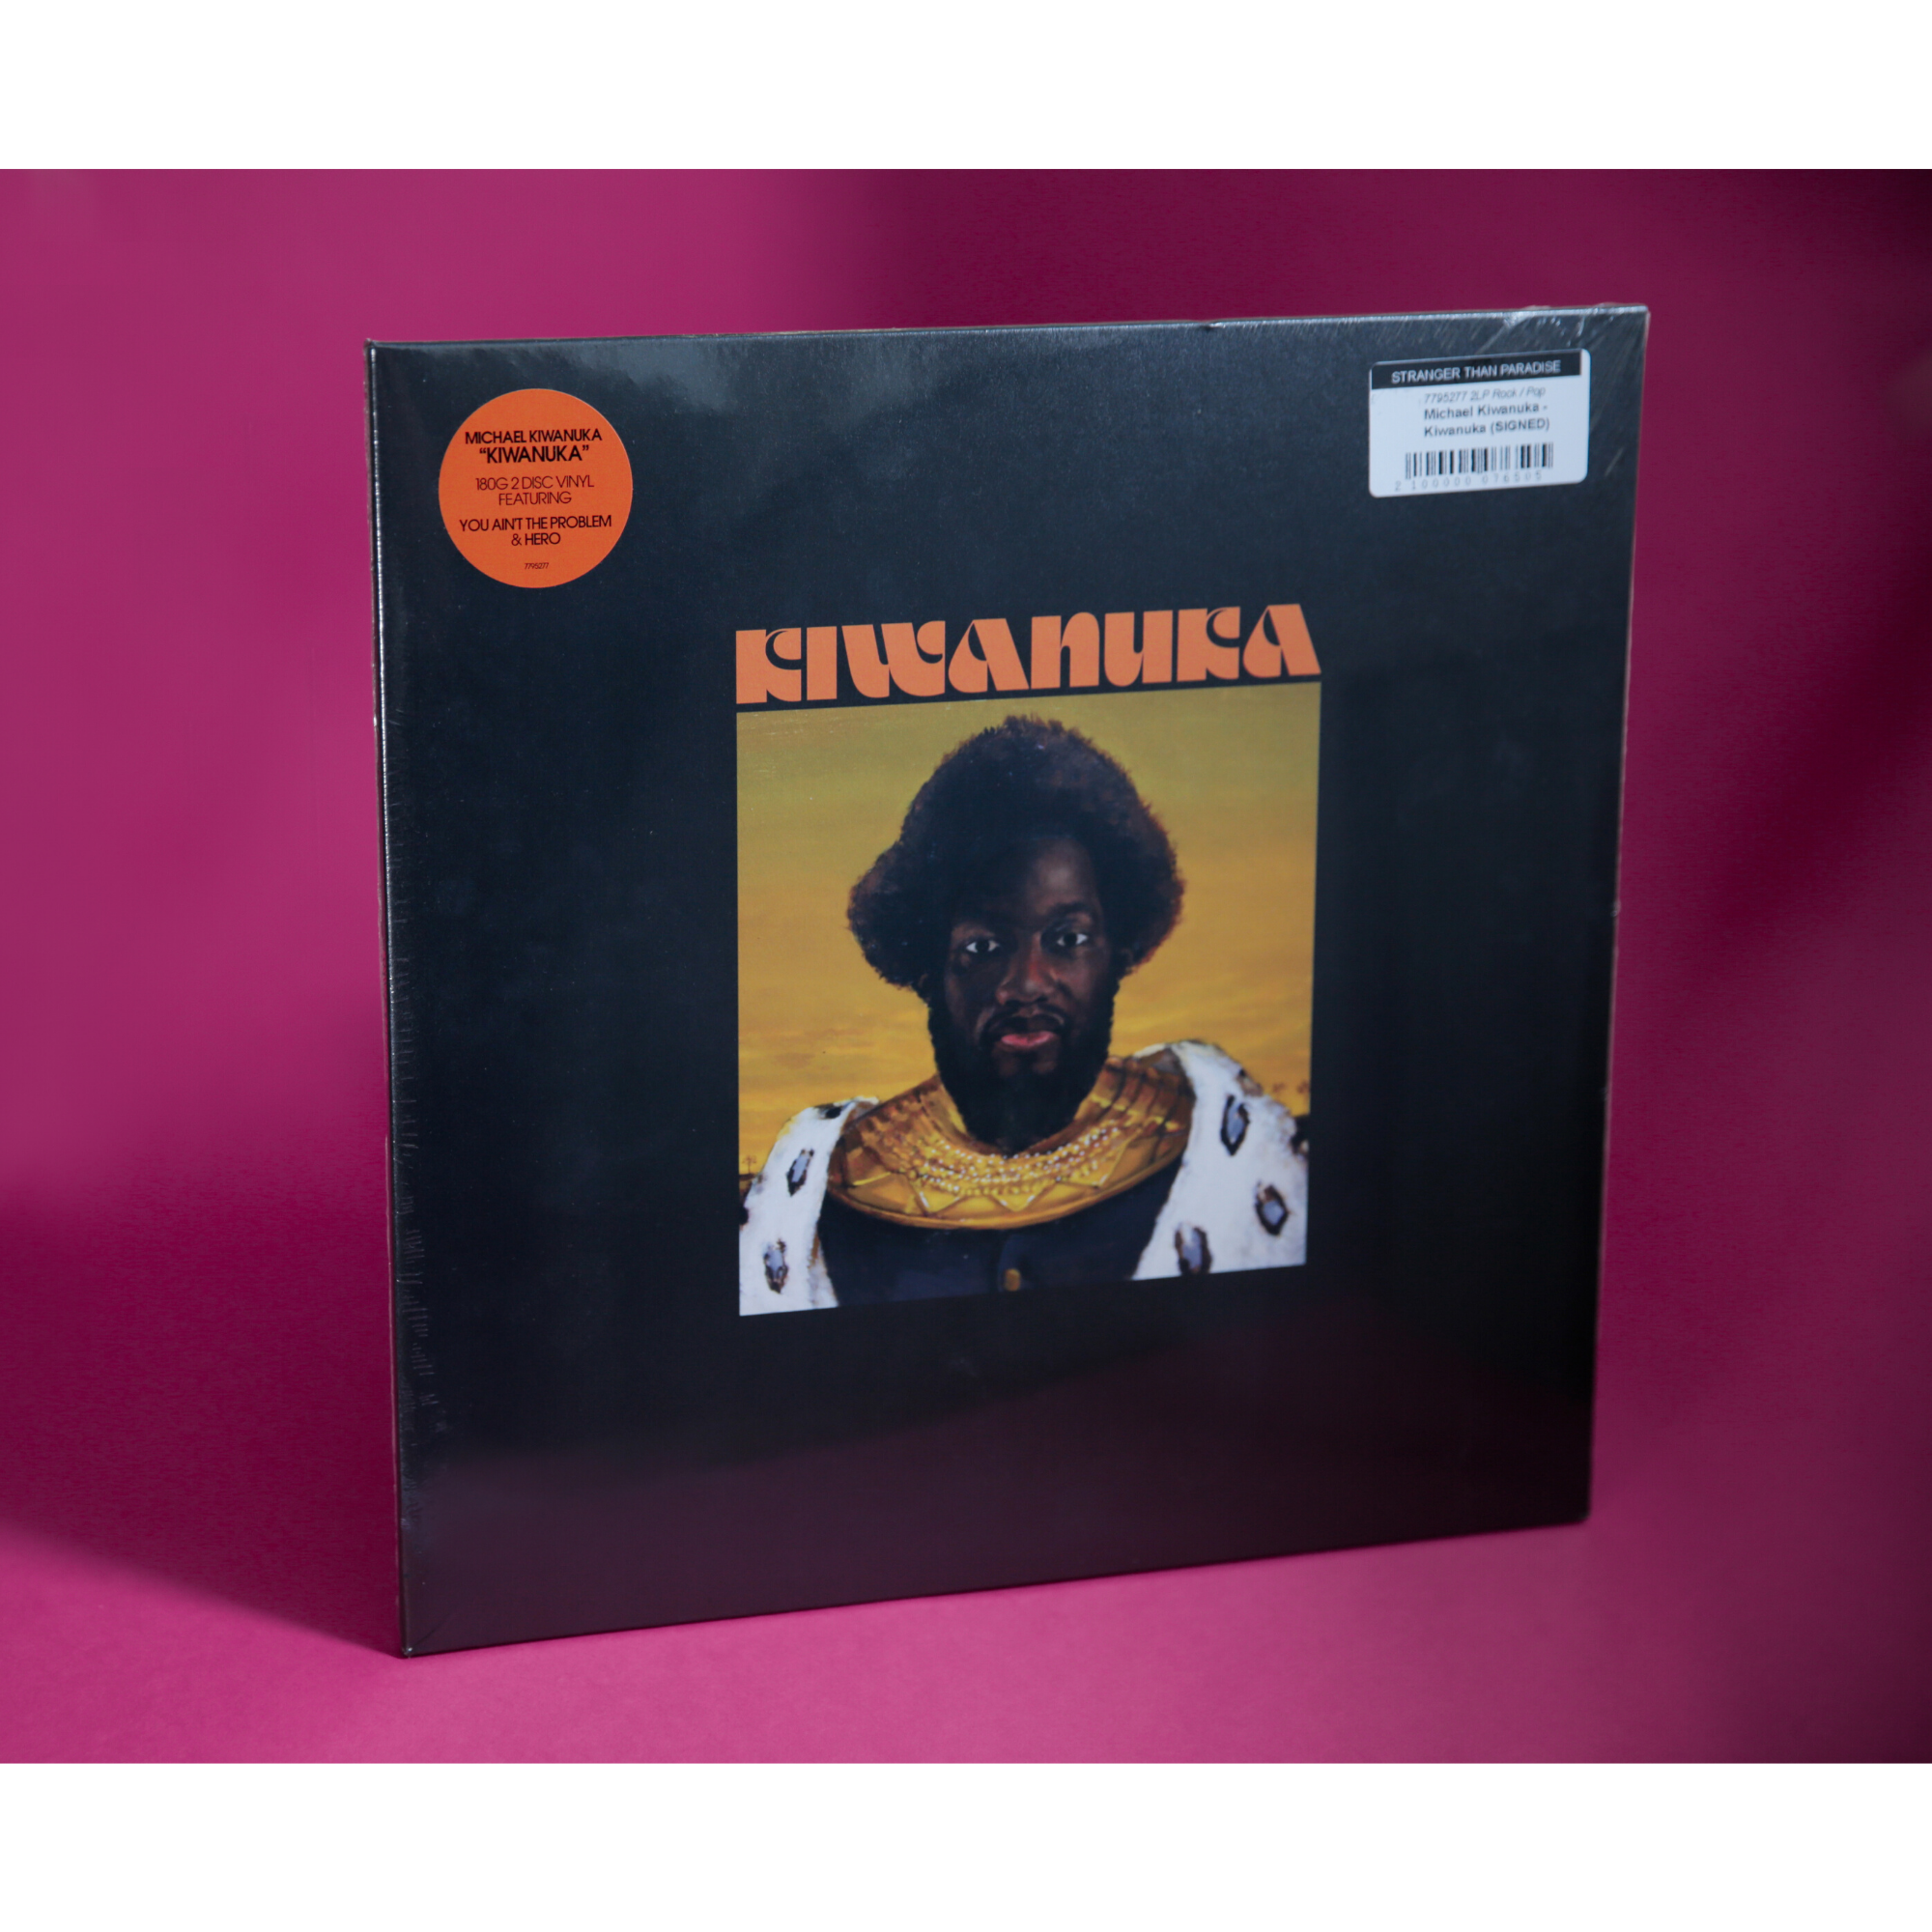 Polydor Michael Kiwanuka - Kiwanuka (SIGNED Coloured Vinyl)